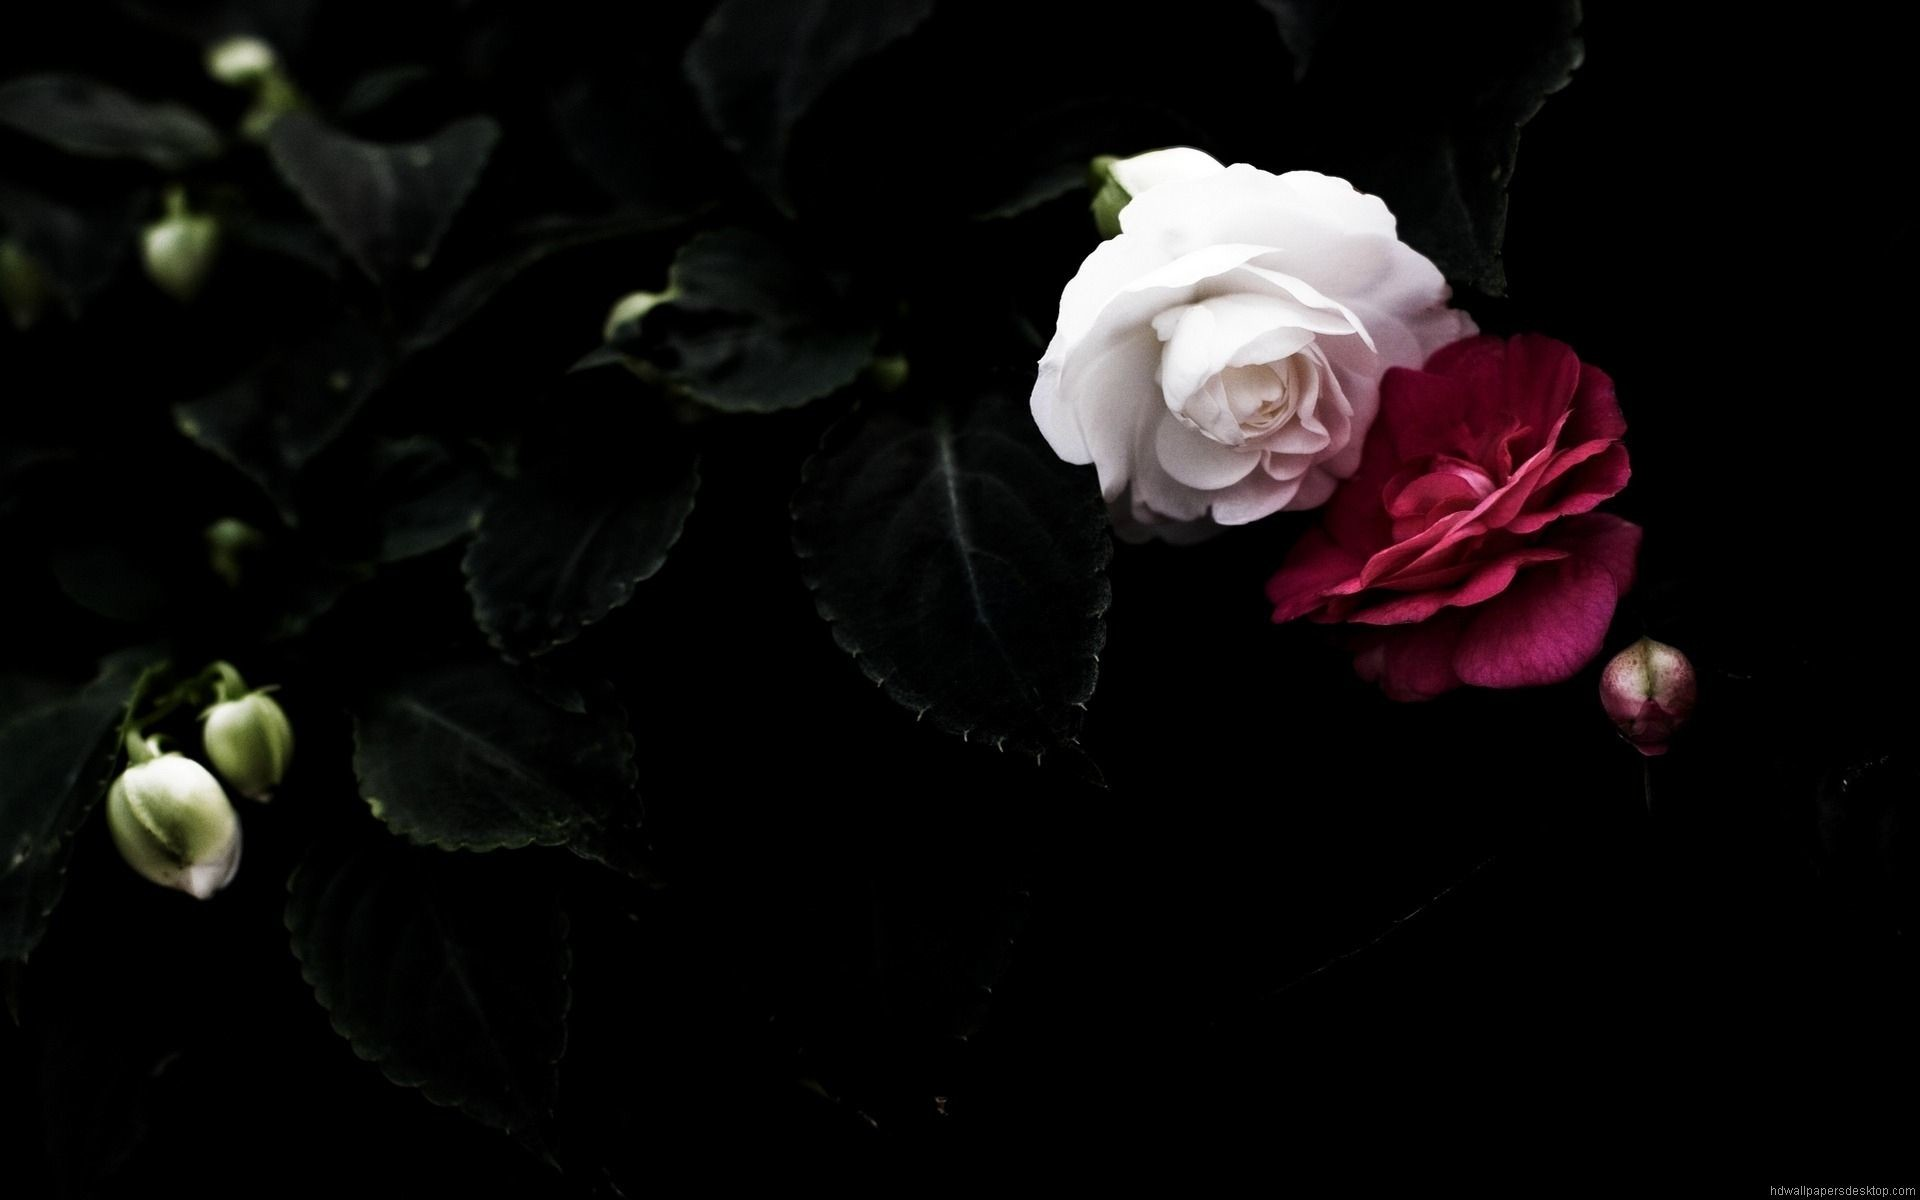 Res: 1920x1200, Black and white roses background widescreen desktop mobile iphone android hd wallpaper and desktop.